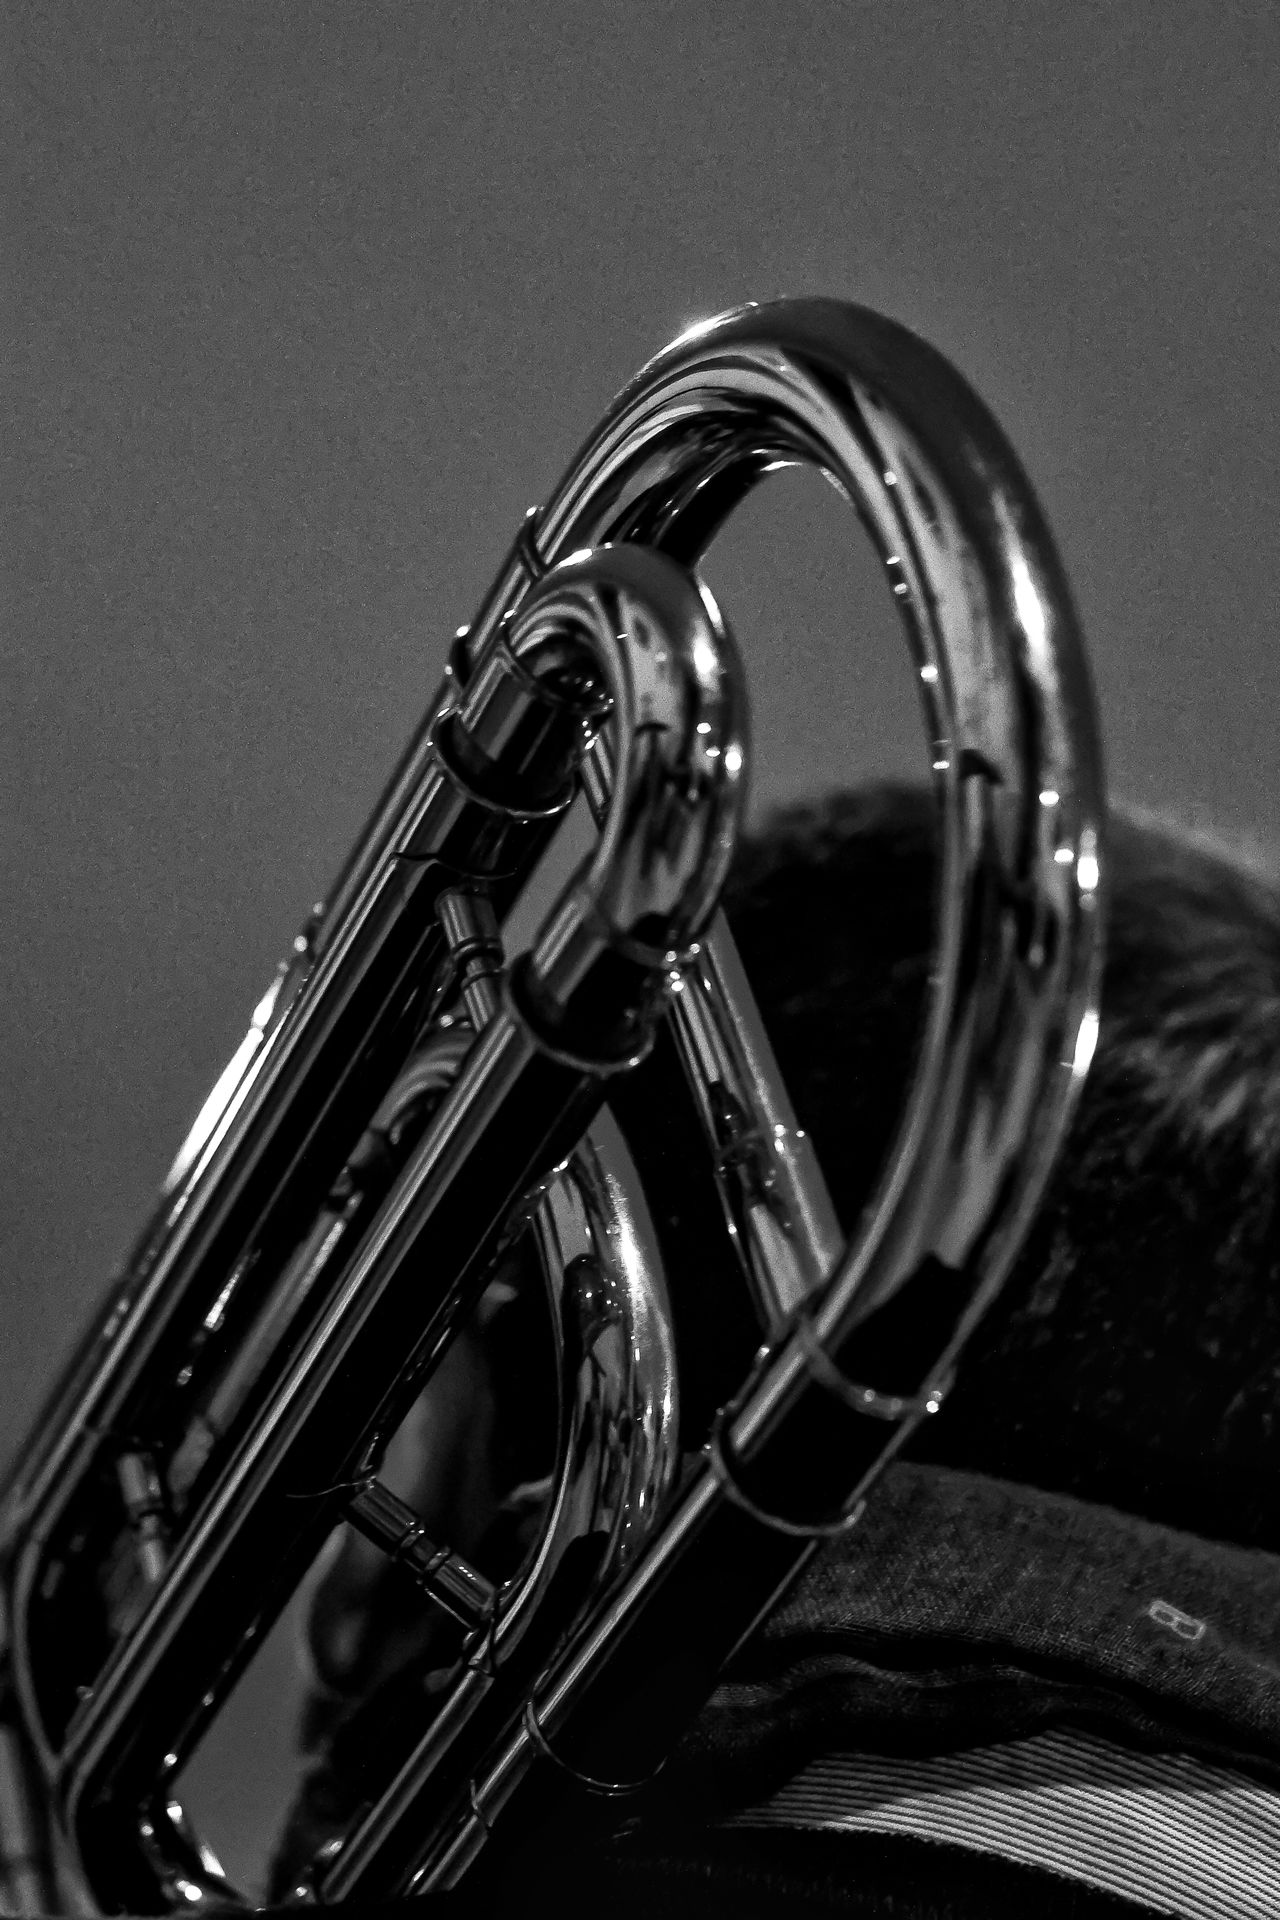 Jazz Jazzband Jazz Concert Blackandwhitephotography EyeEm Best Shots - Black + White Black And White Photography Music Trombone Musical Instruments